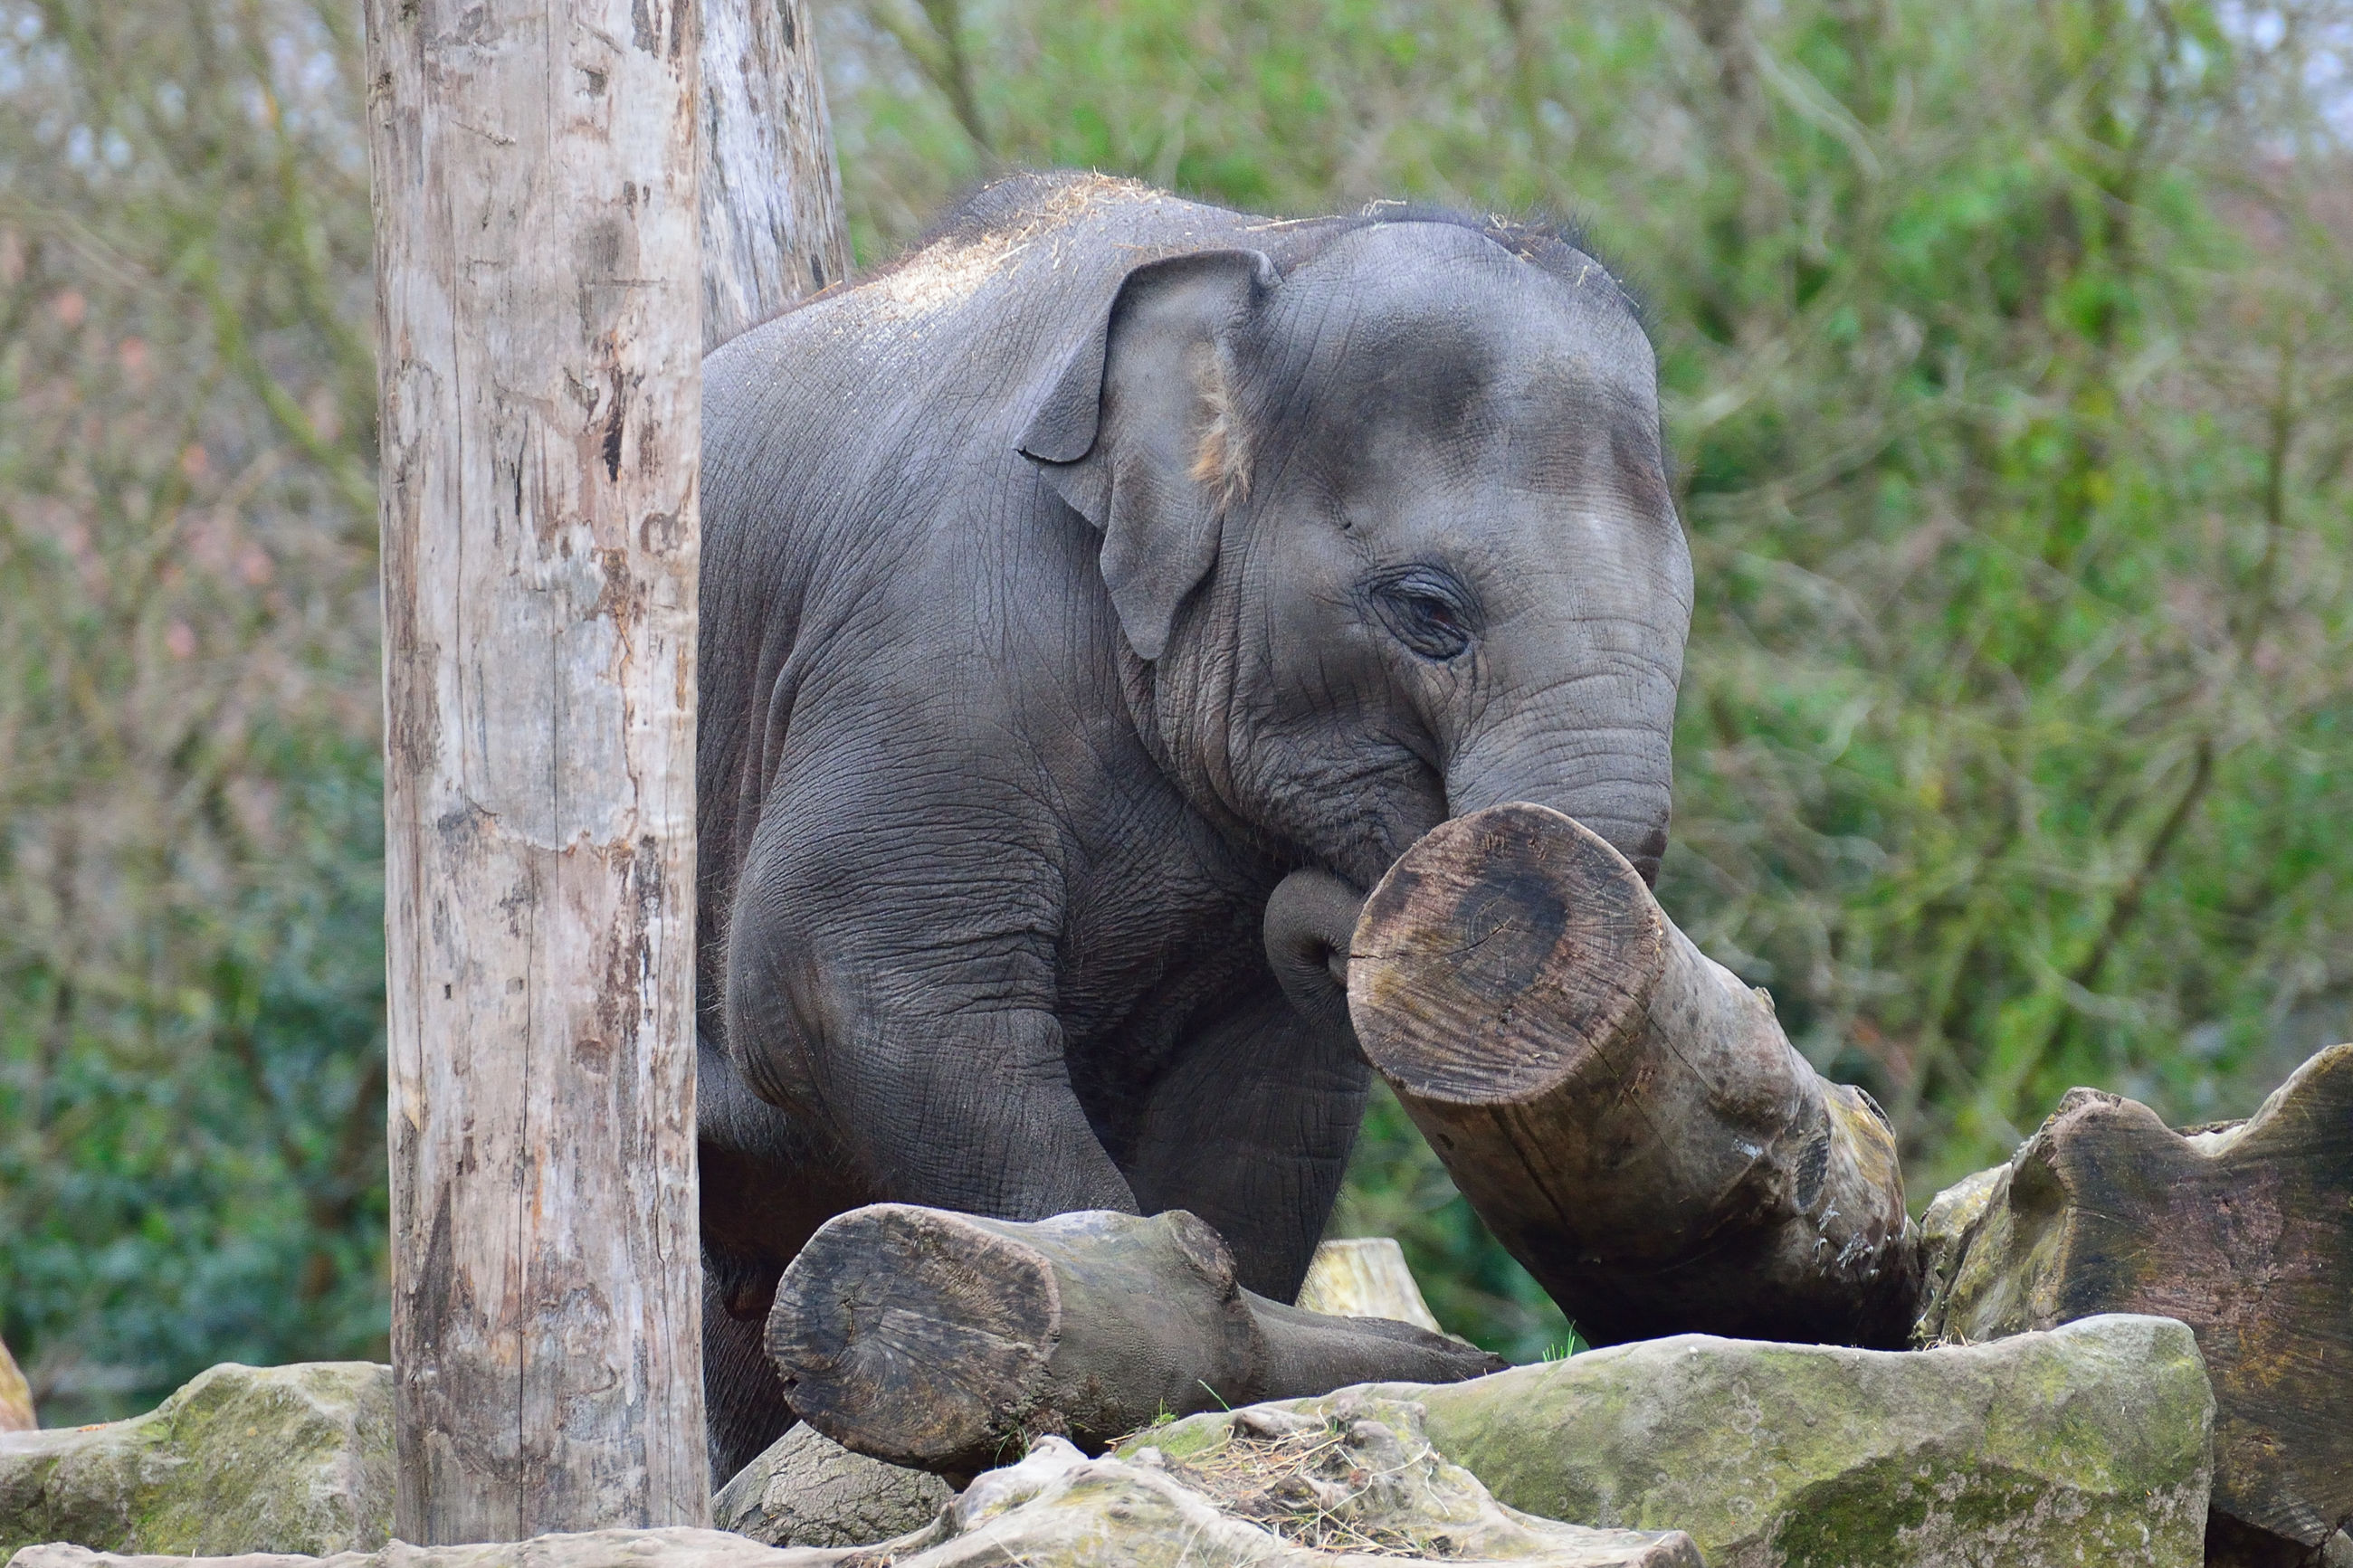 animals in the wild, wildlife, animal themes, tree trunk, one animal, mammal, focus on foreground, elephant calf, resting, nature, outdoors, safari animals, endangered species, zoology, looking at camera, zoo, animal head, day